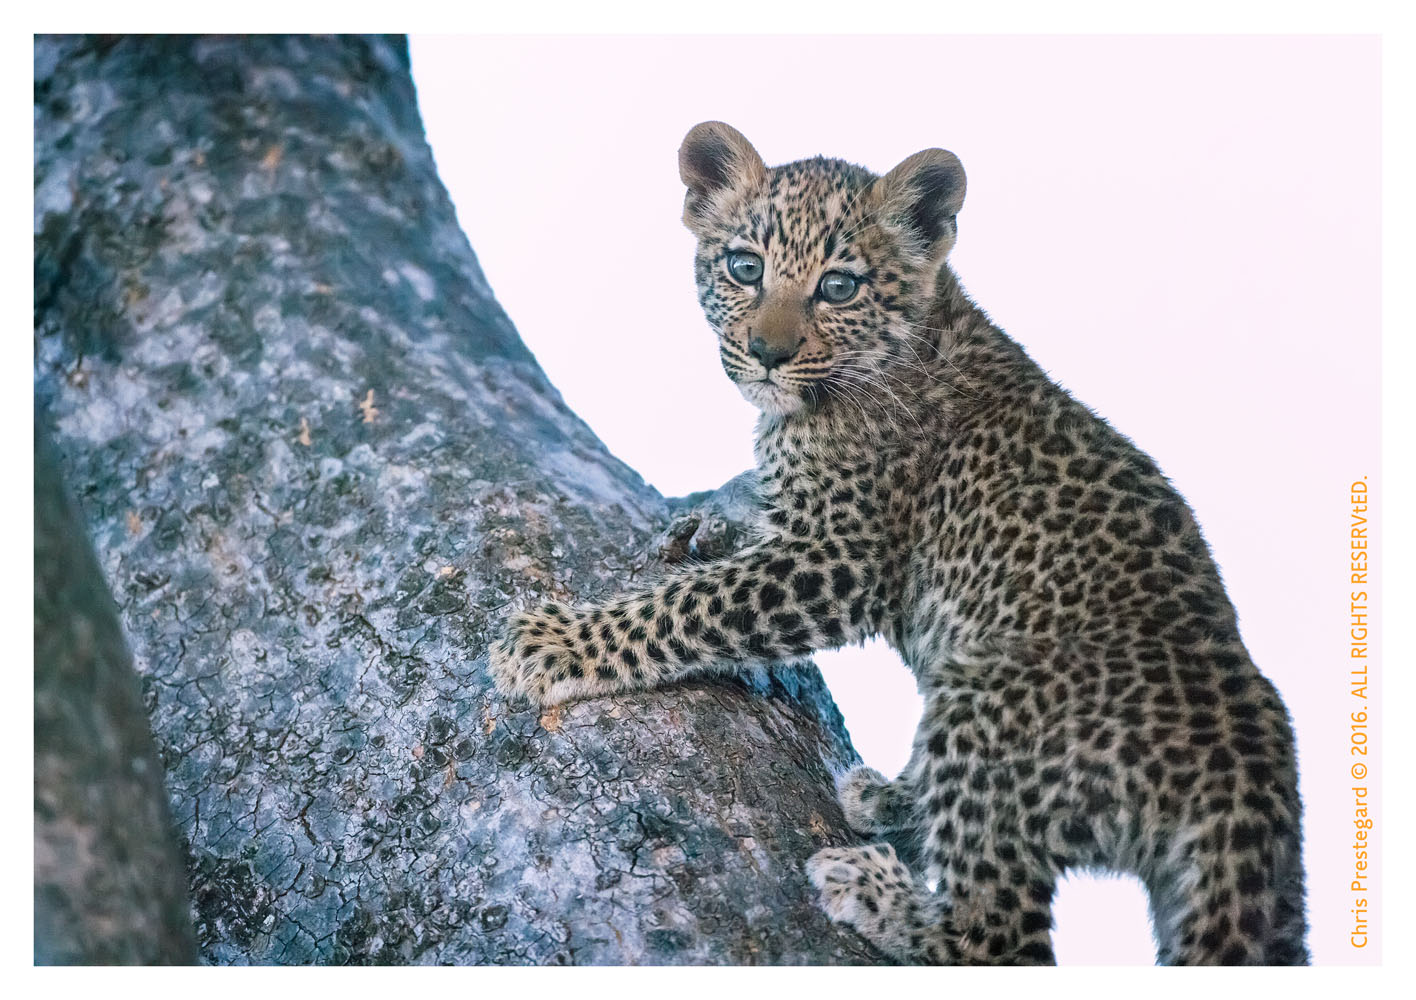 Leopard Cub in Tree, Chitabe Camp, Botswana July 2007